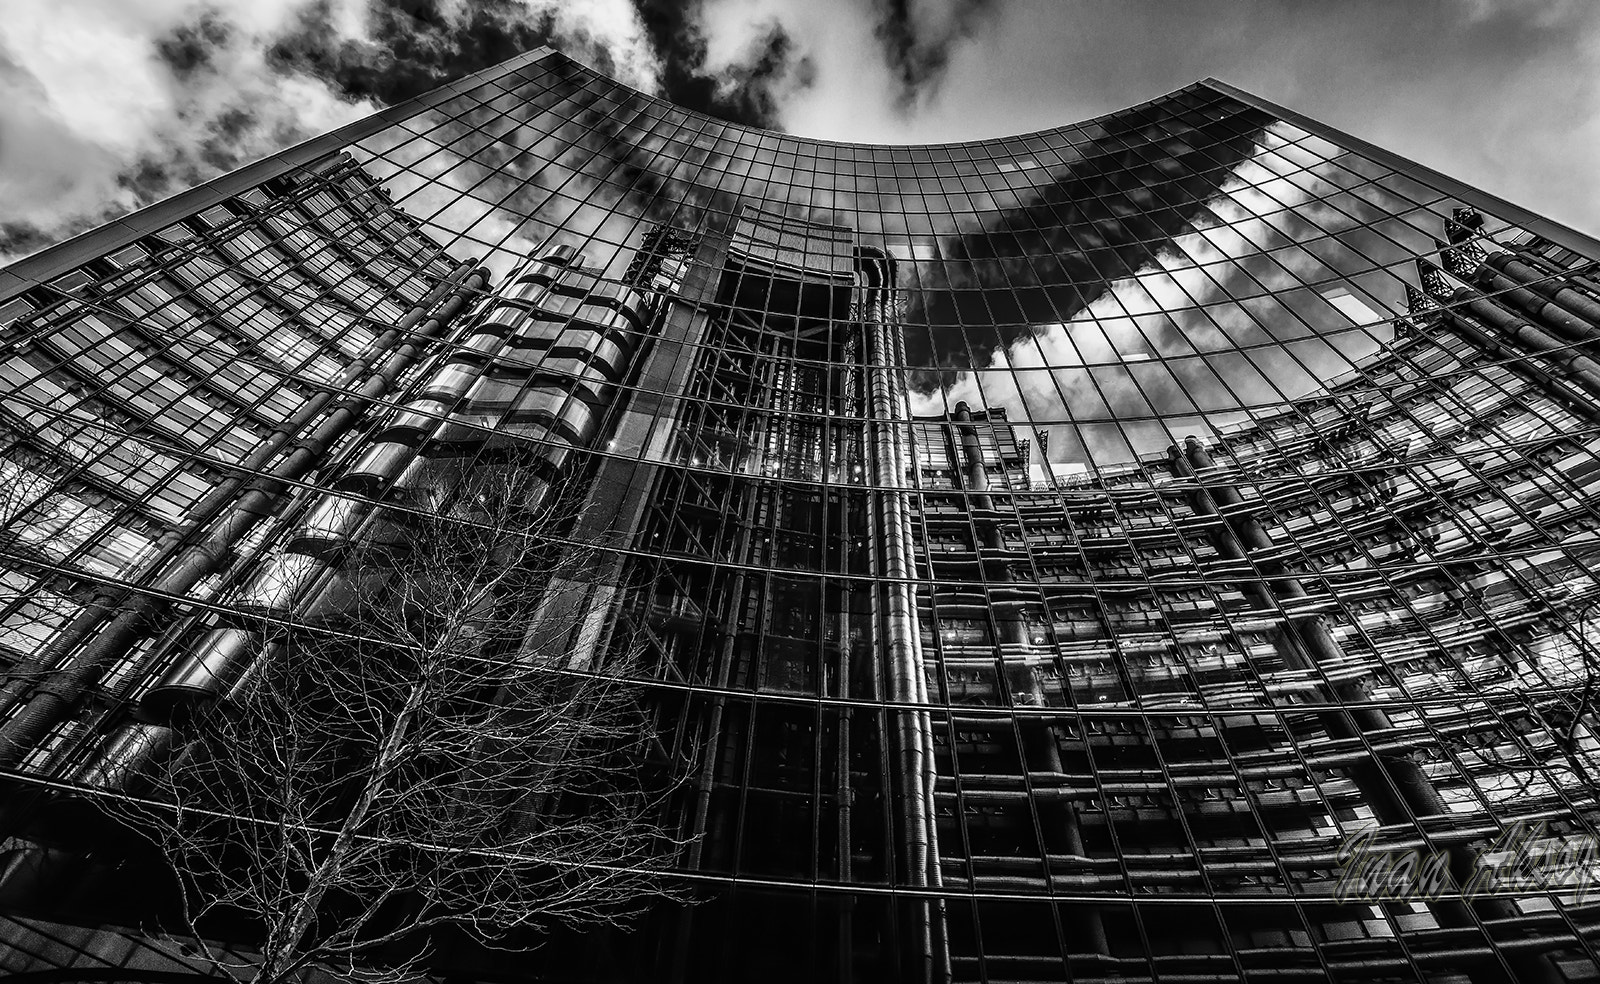 Photograph LLoyds of London Checks if she is pretty or not. by Inan Aksoy on 500px